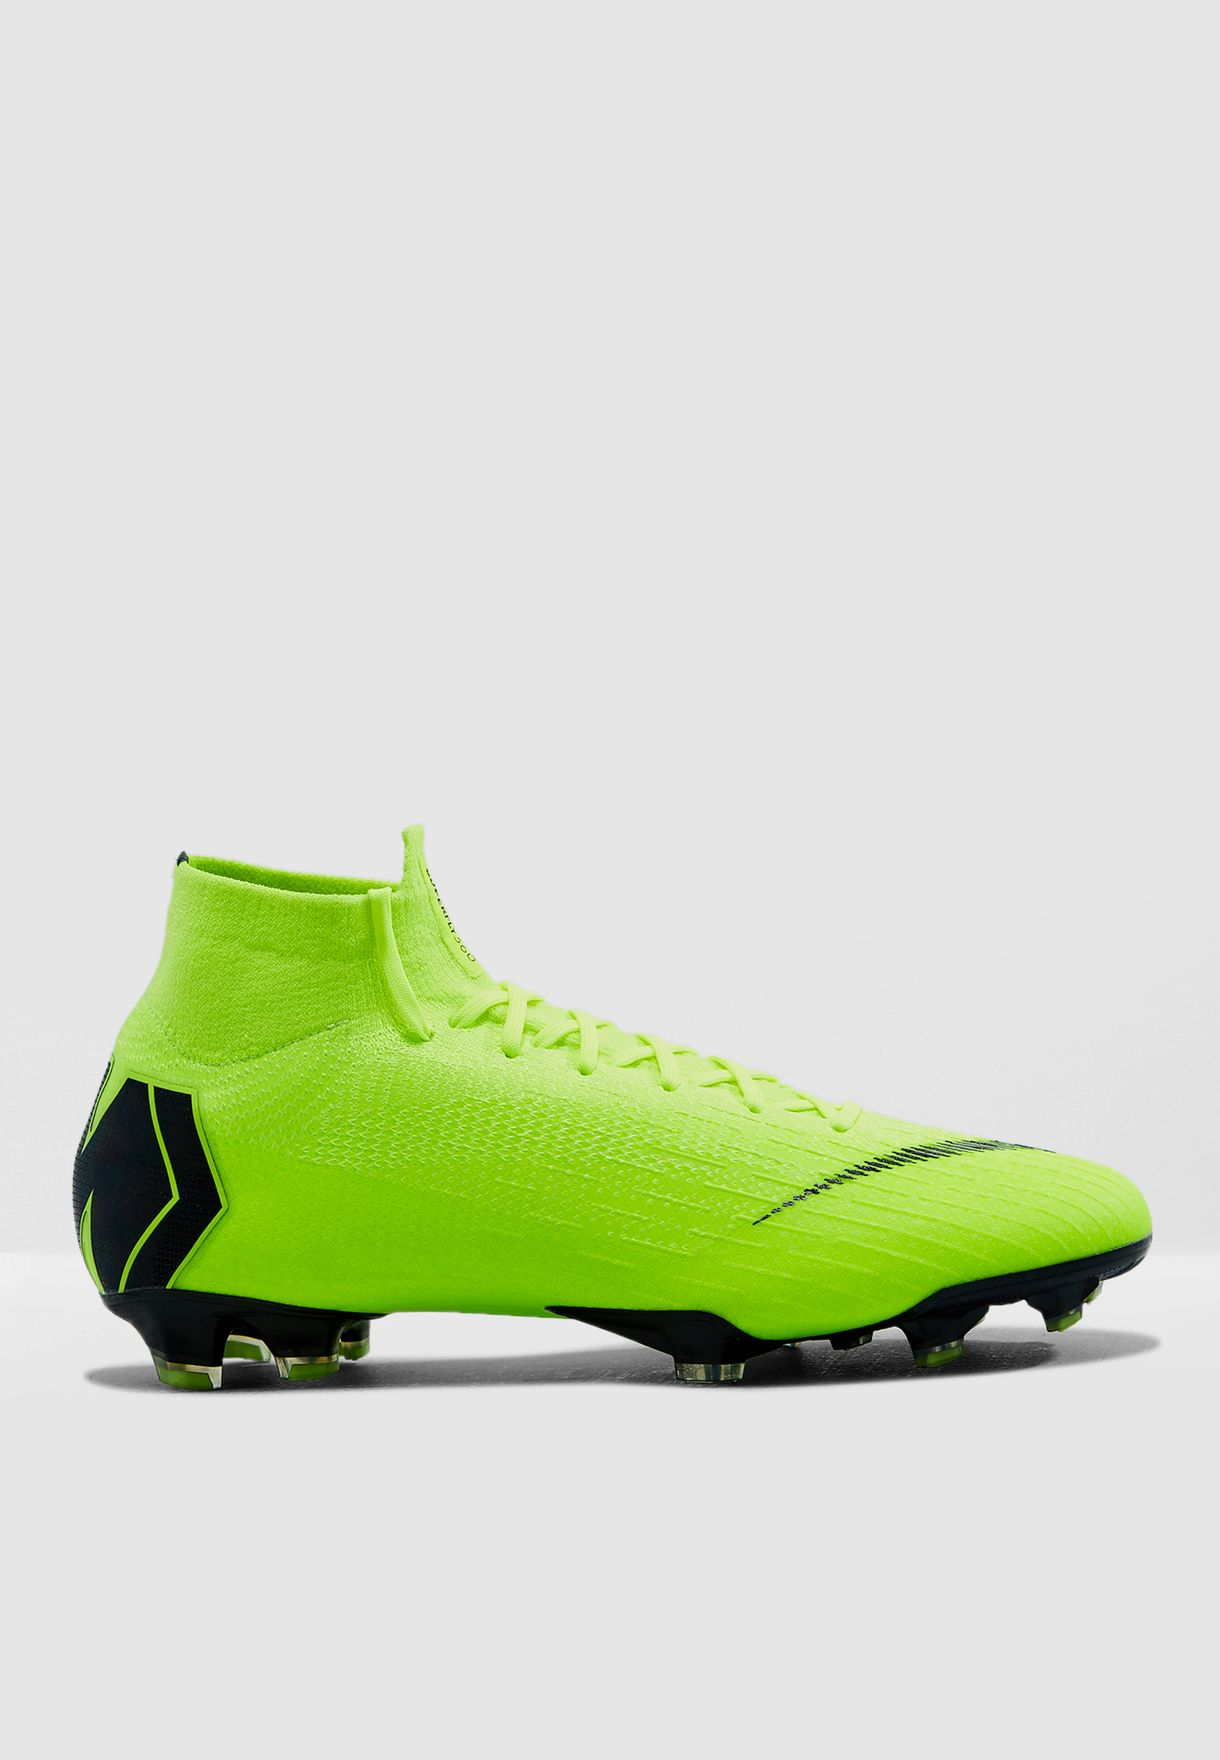 low priced 6b8ed 7f5e1 Mercurial Superfly 6 Elite FG